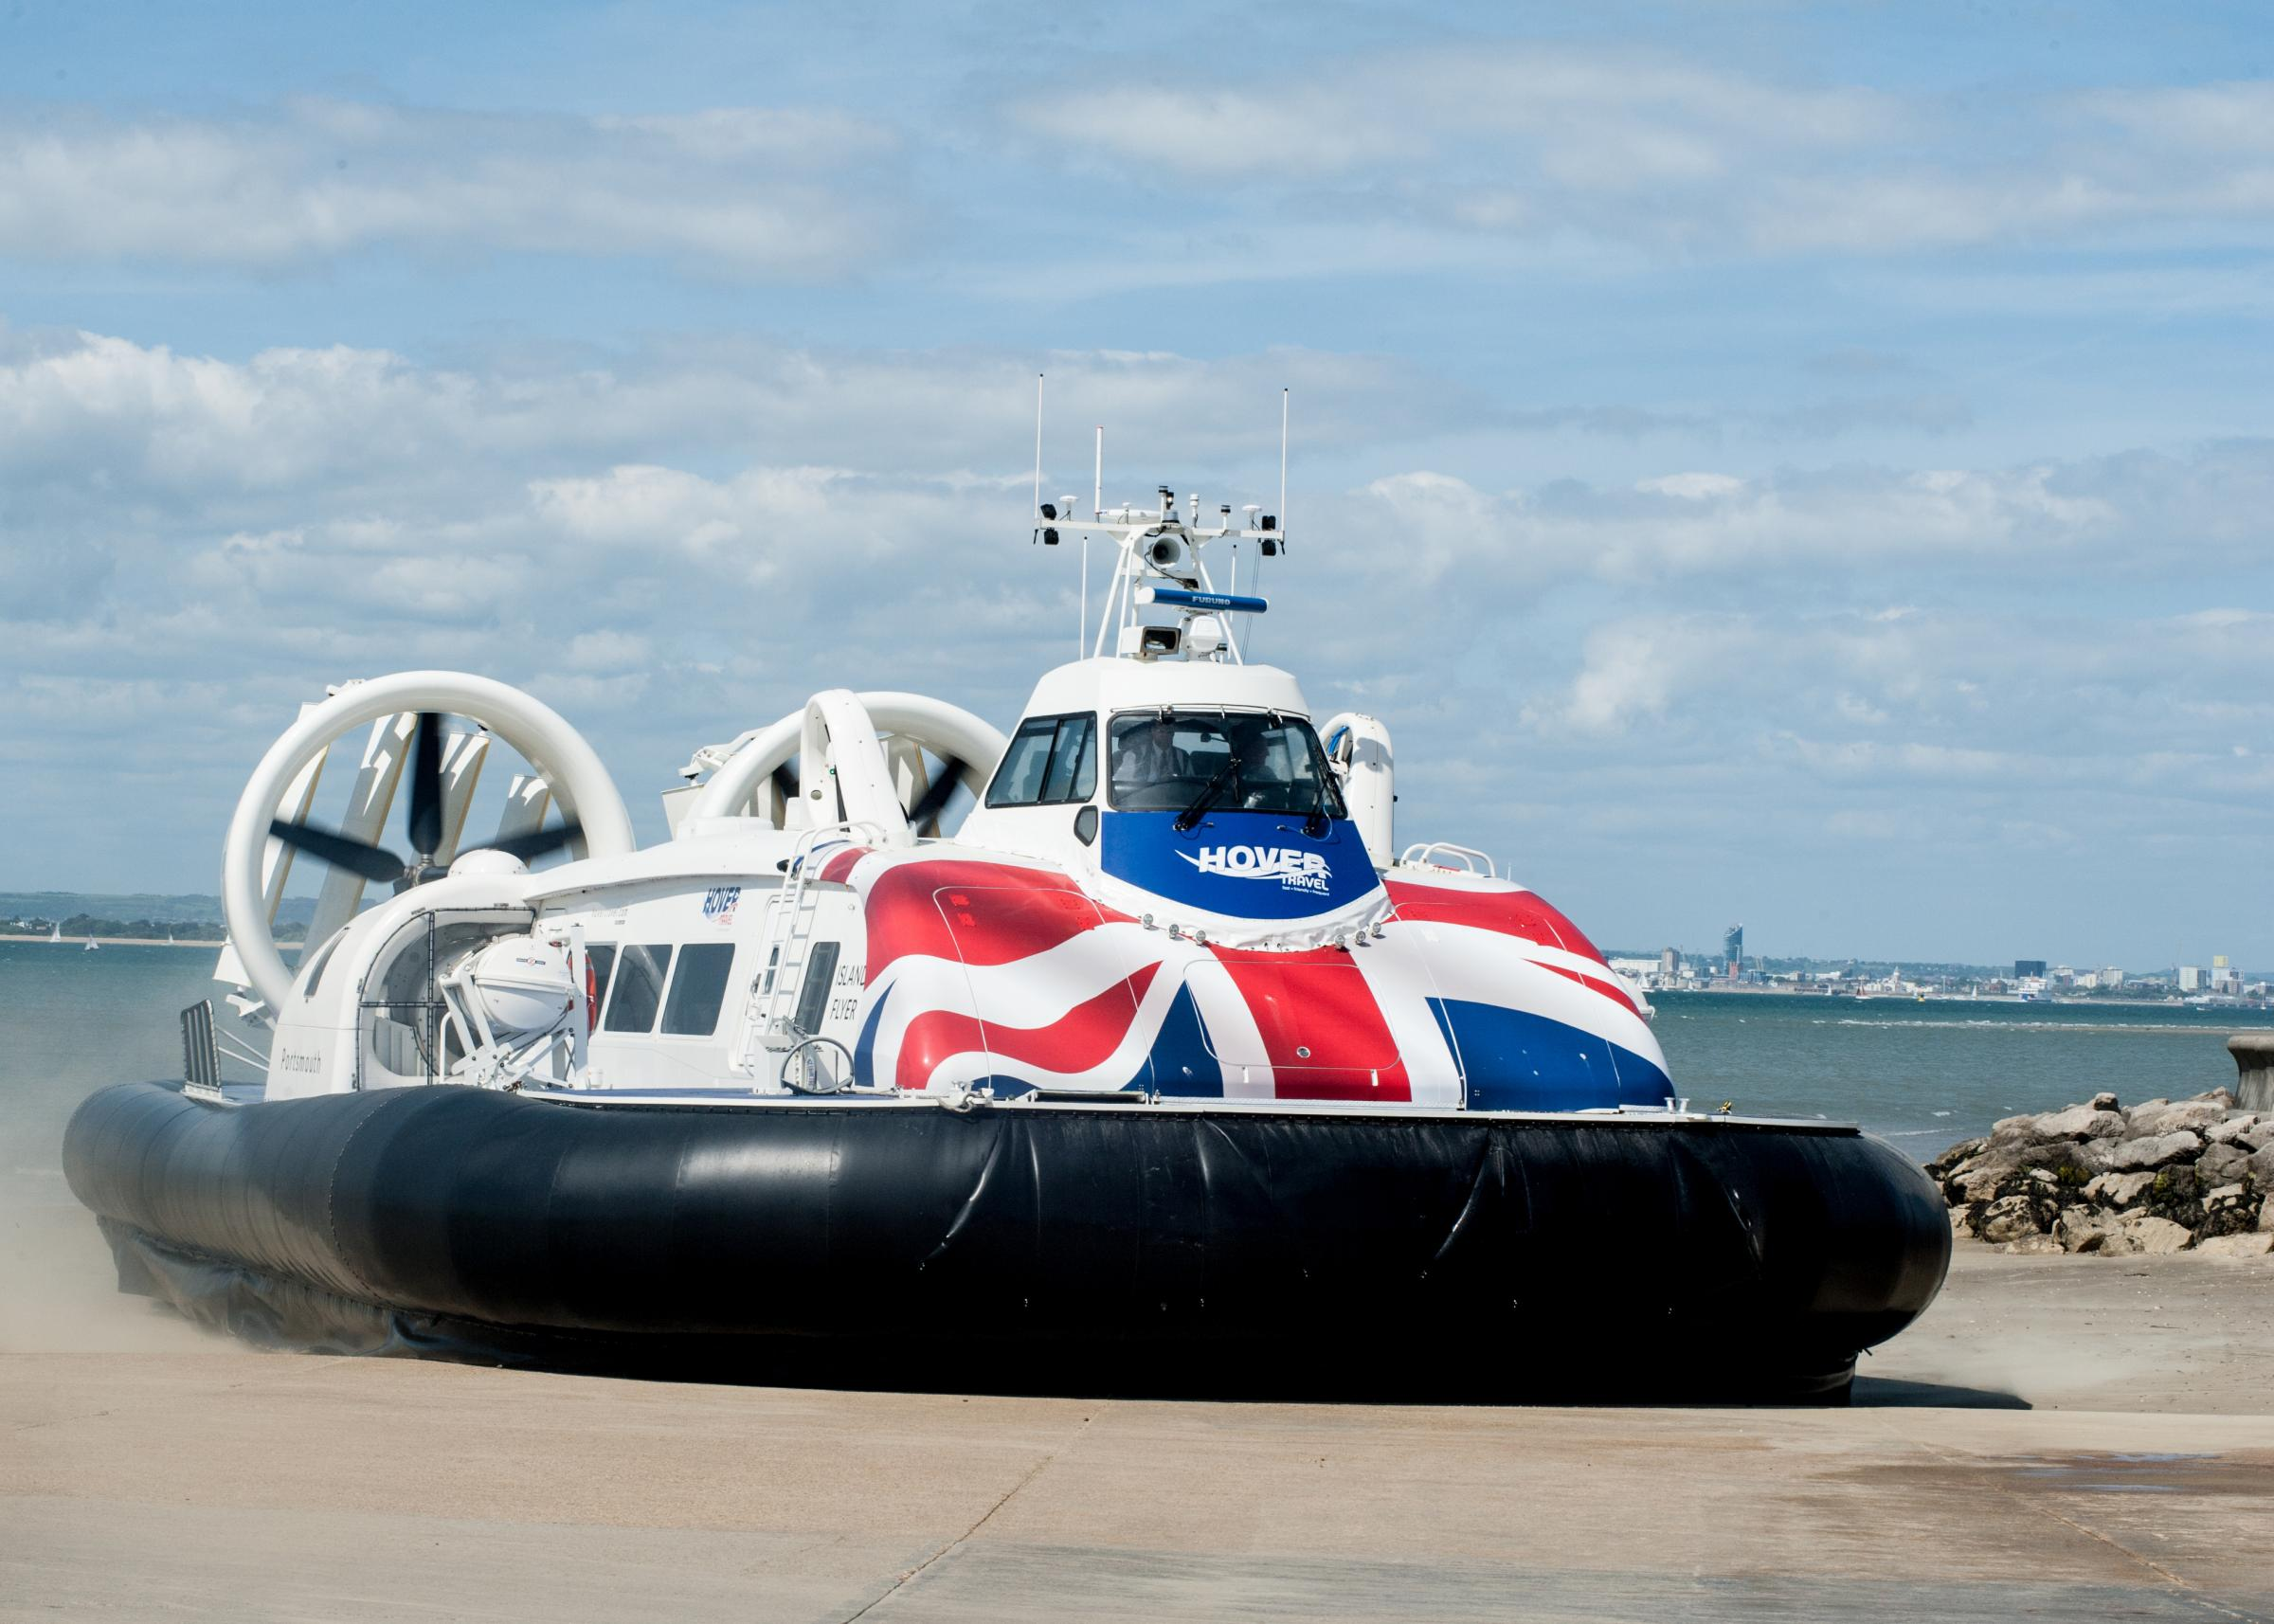 High winds disrupt Hovertravel services.